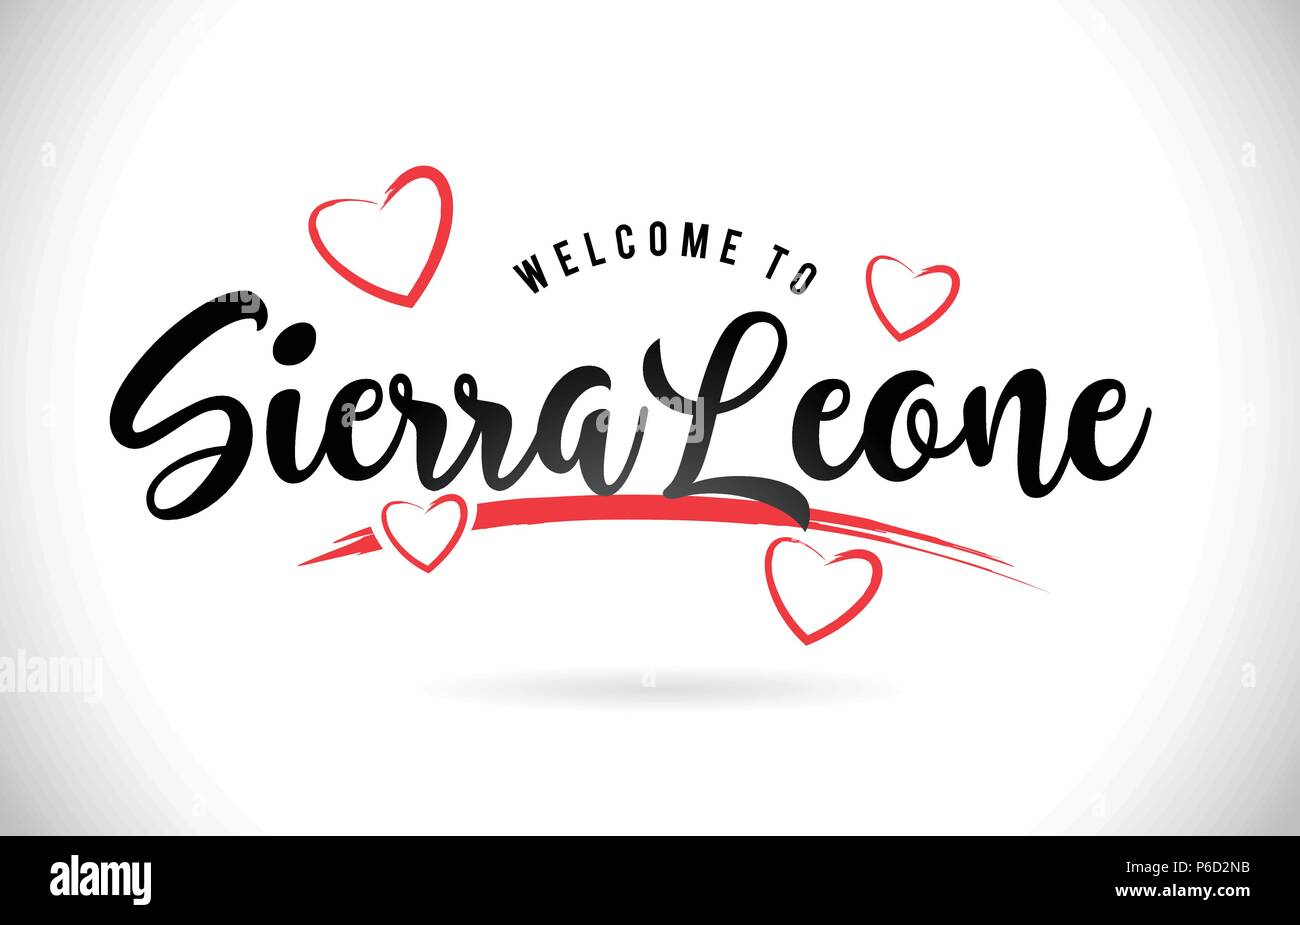 SierraLeone Welcome To Word Text with Handwritten Font and Red Love Hearts Vector Image Illustration Eps. Stock Vector